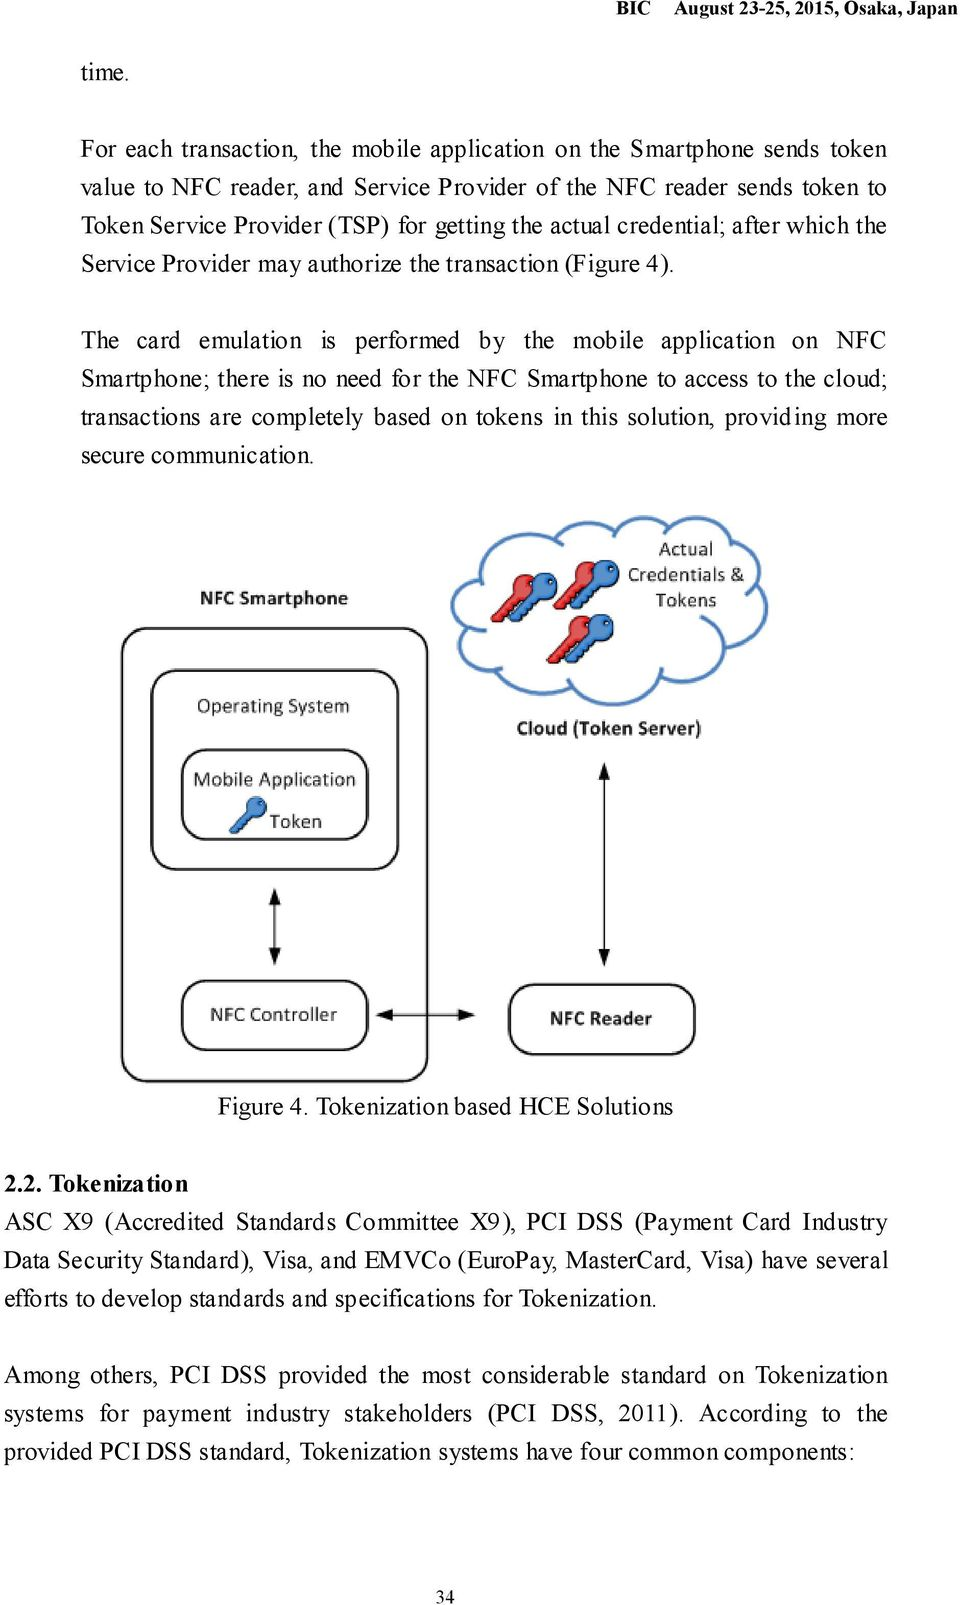 The card emulation is performed by the mobile application on NFC Smartphone; there is no need for the NFC Smartphone to access to the cloud; transactions are completely based on tokens in this